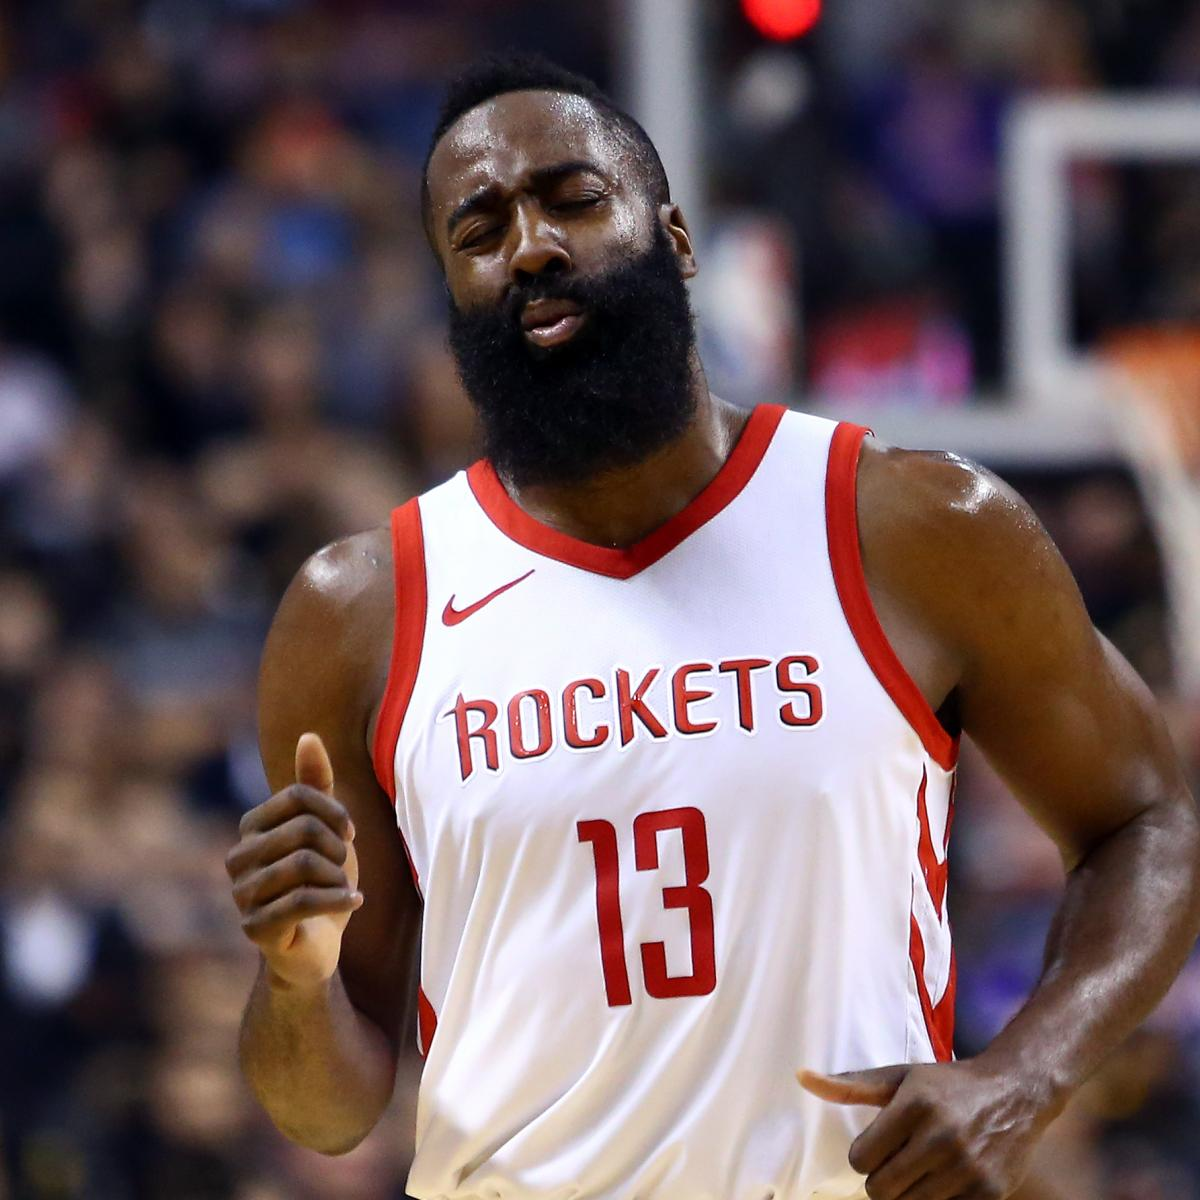 Houston Rockets Game Log: Rockets' 17 Game Win Streak Snapped In Loss To Raptors